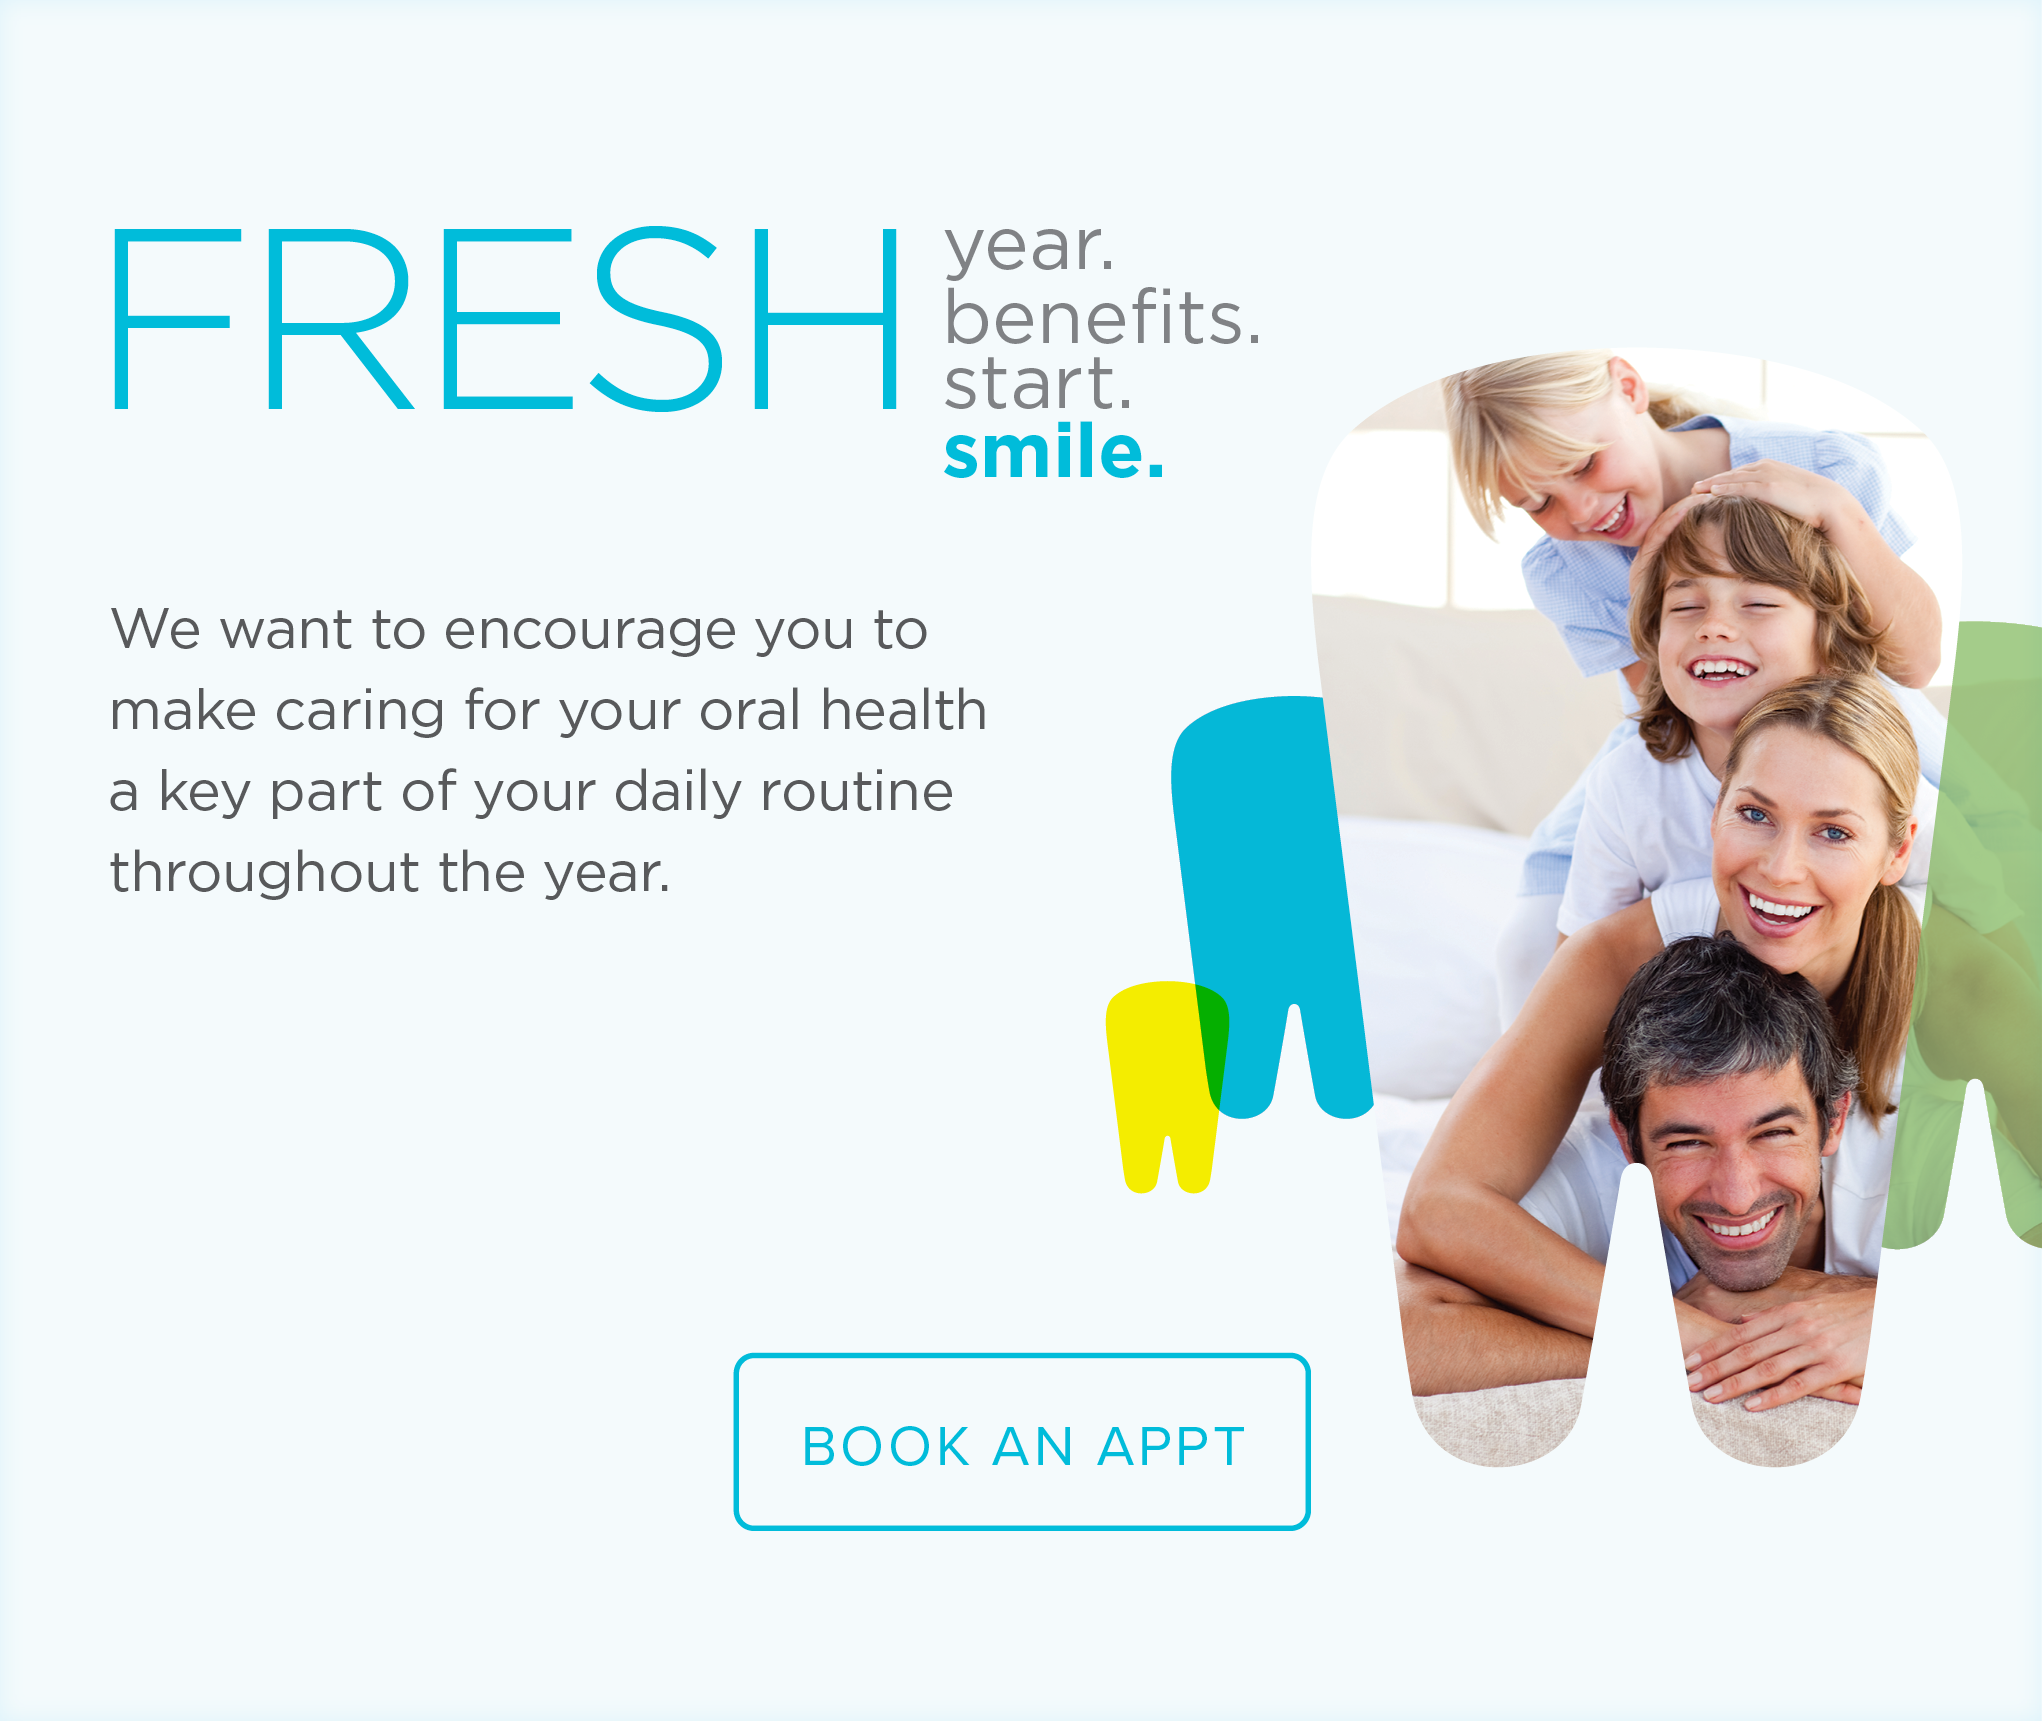 Moorpark Dental Group and Orthodontics - Make the Most of Your Benefits